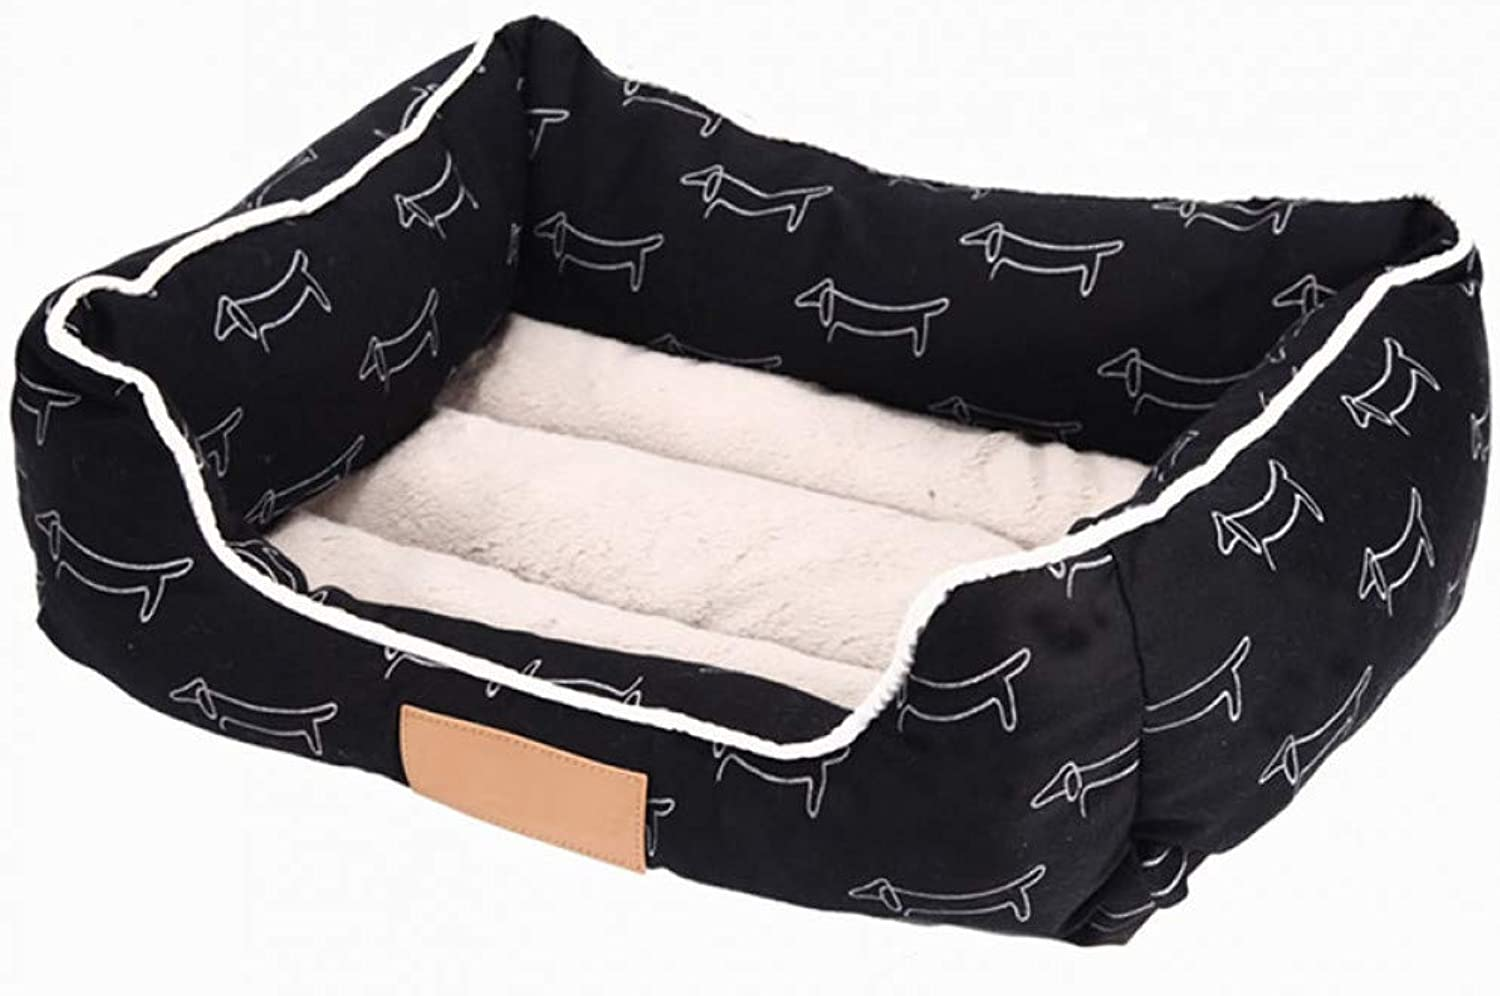 Cotton printed pet dog mattress comfortable autumn and winter puppy cat bed rectangular sofa bed small medium dog pet